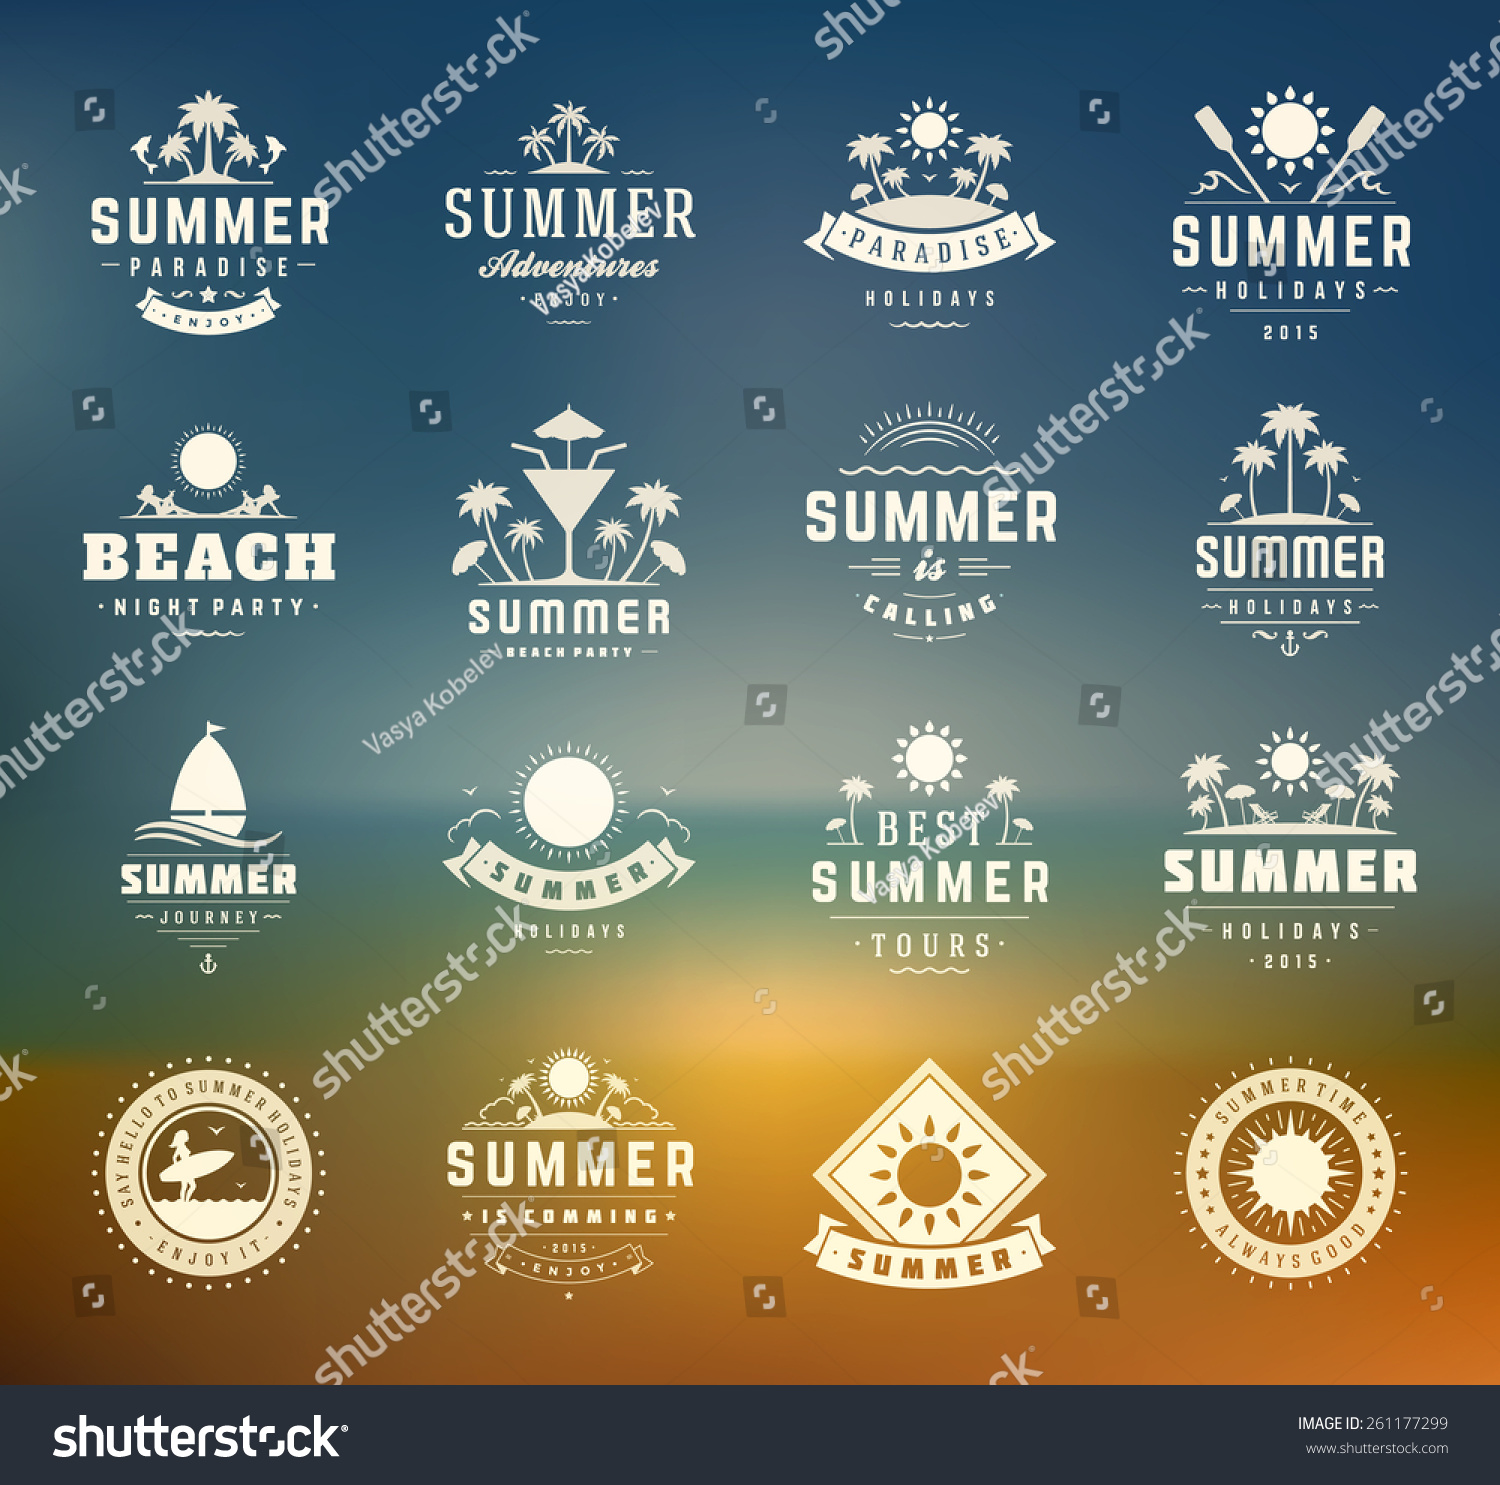 summer holidays design elements typography set stock vector summer holidays design elements and typography set retro and vintage templates labels badges